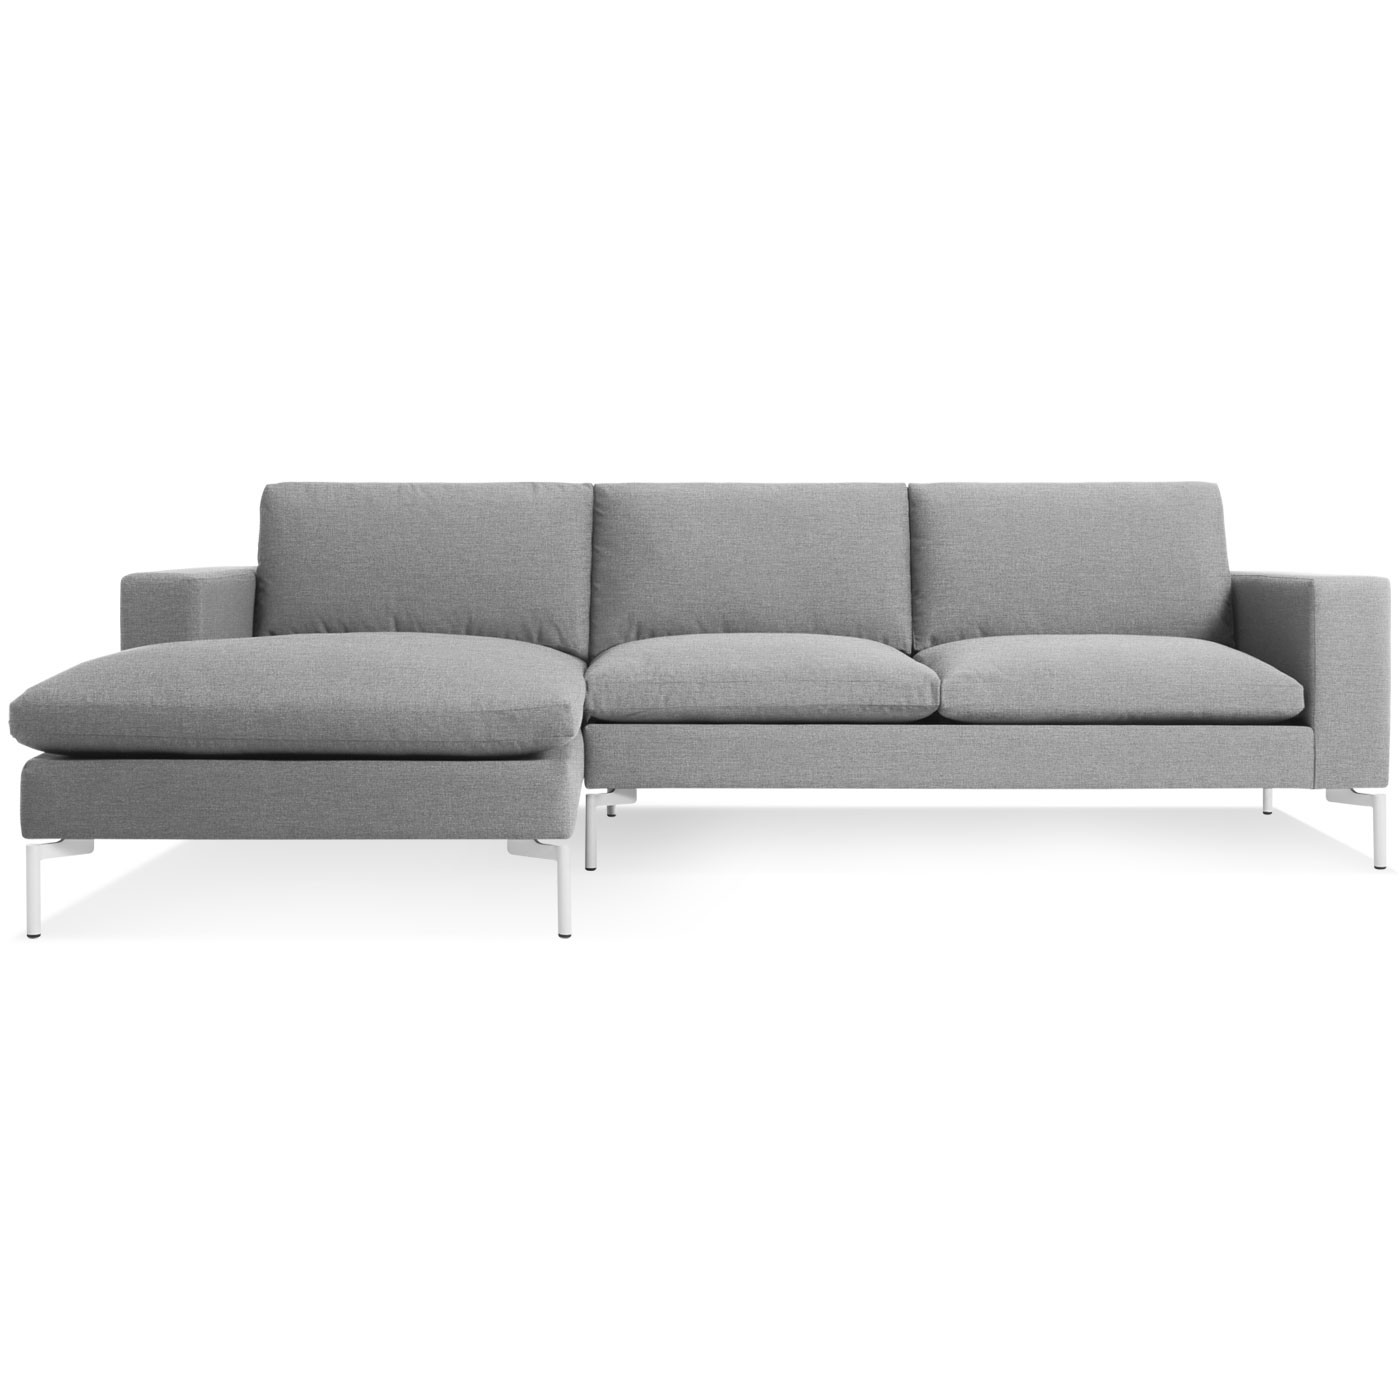 New Standard Sofa with Chaise by Blu Dot